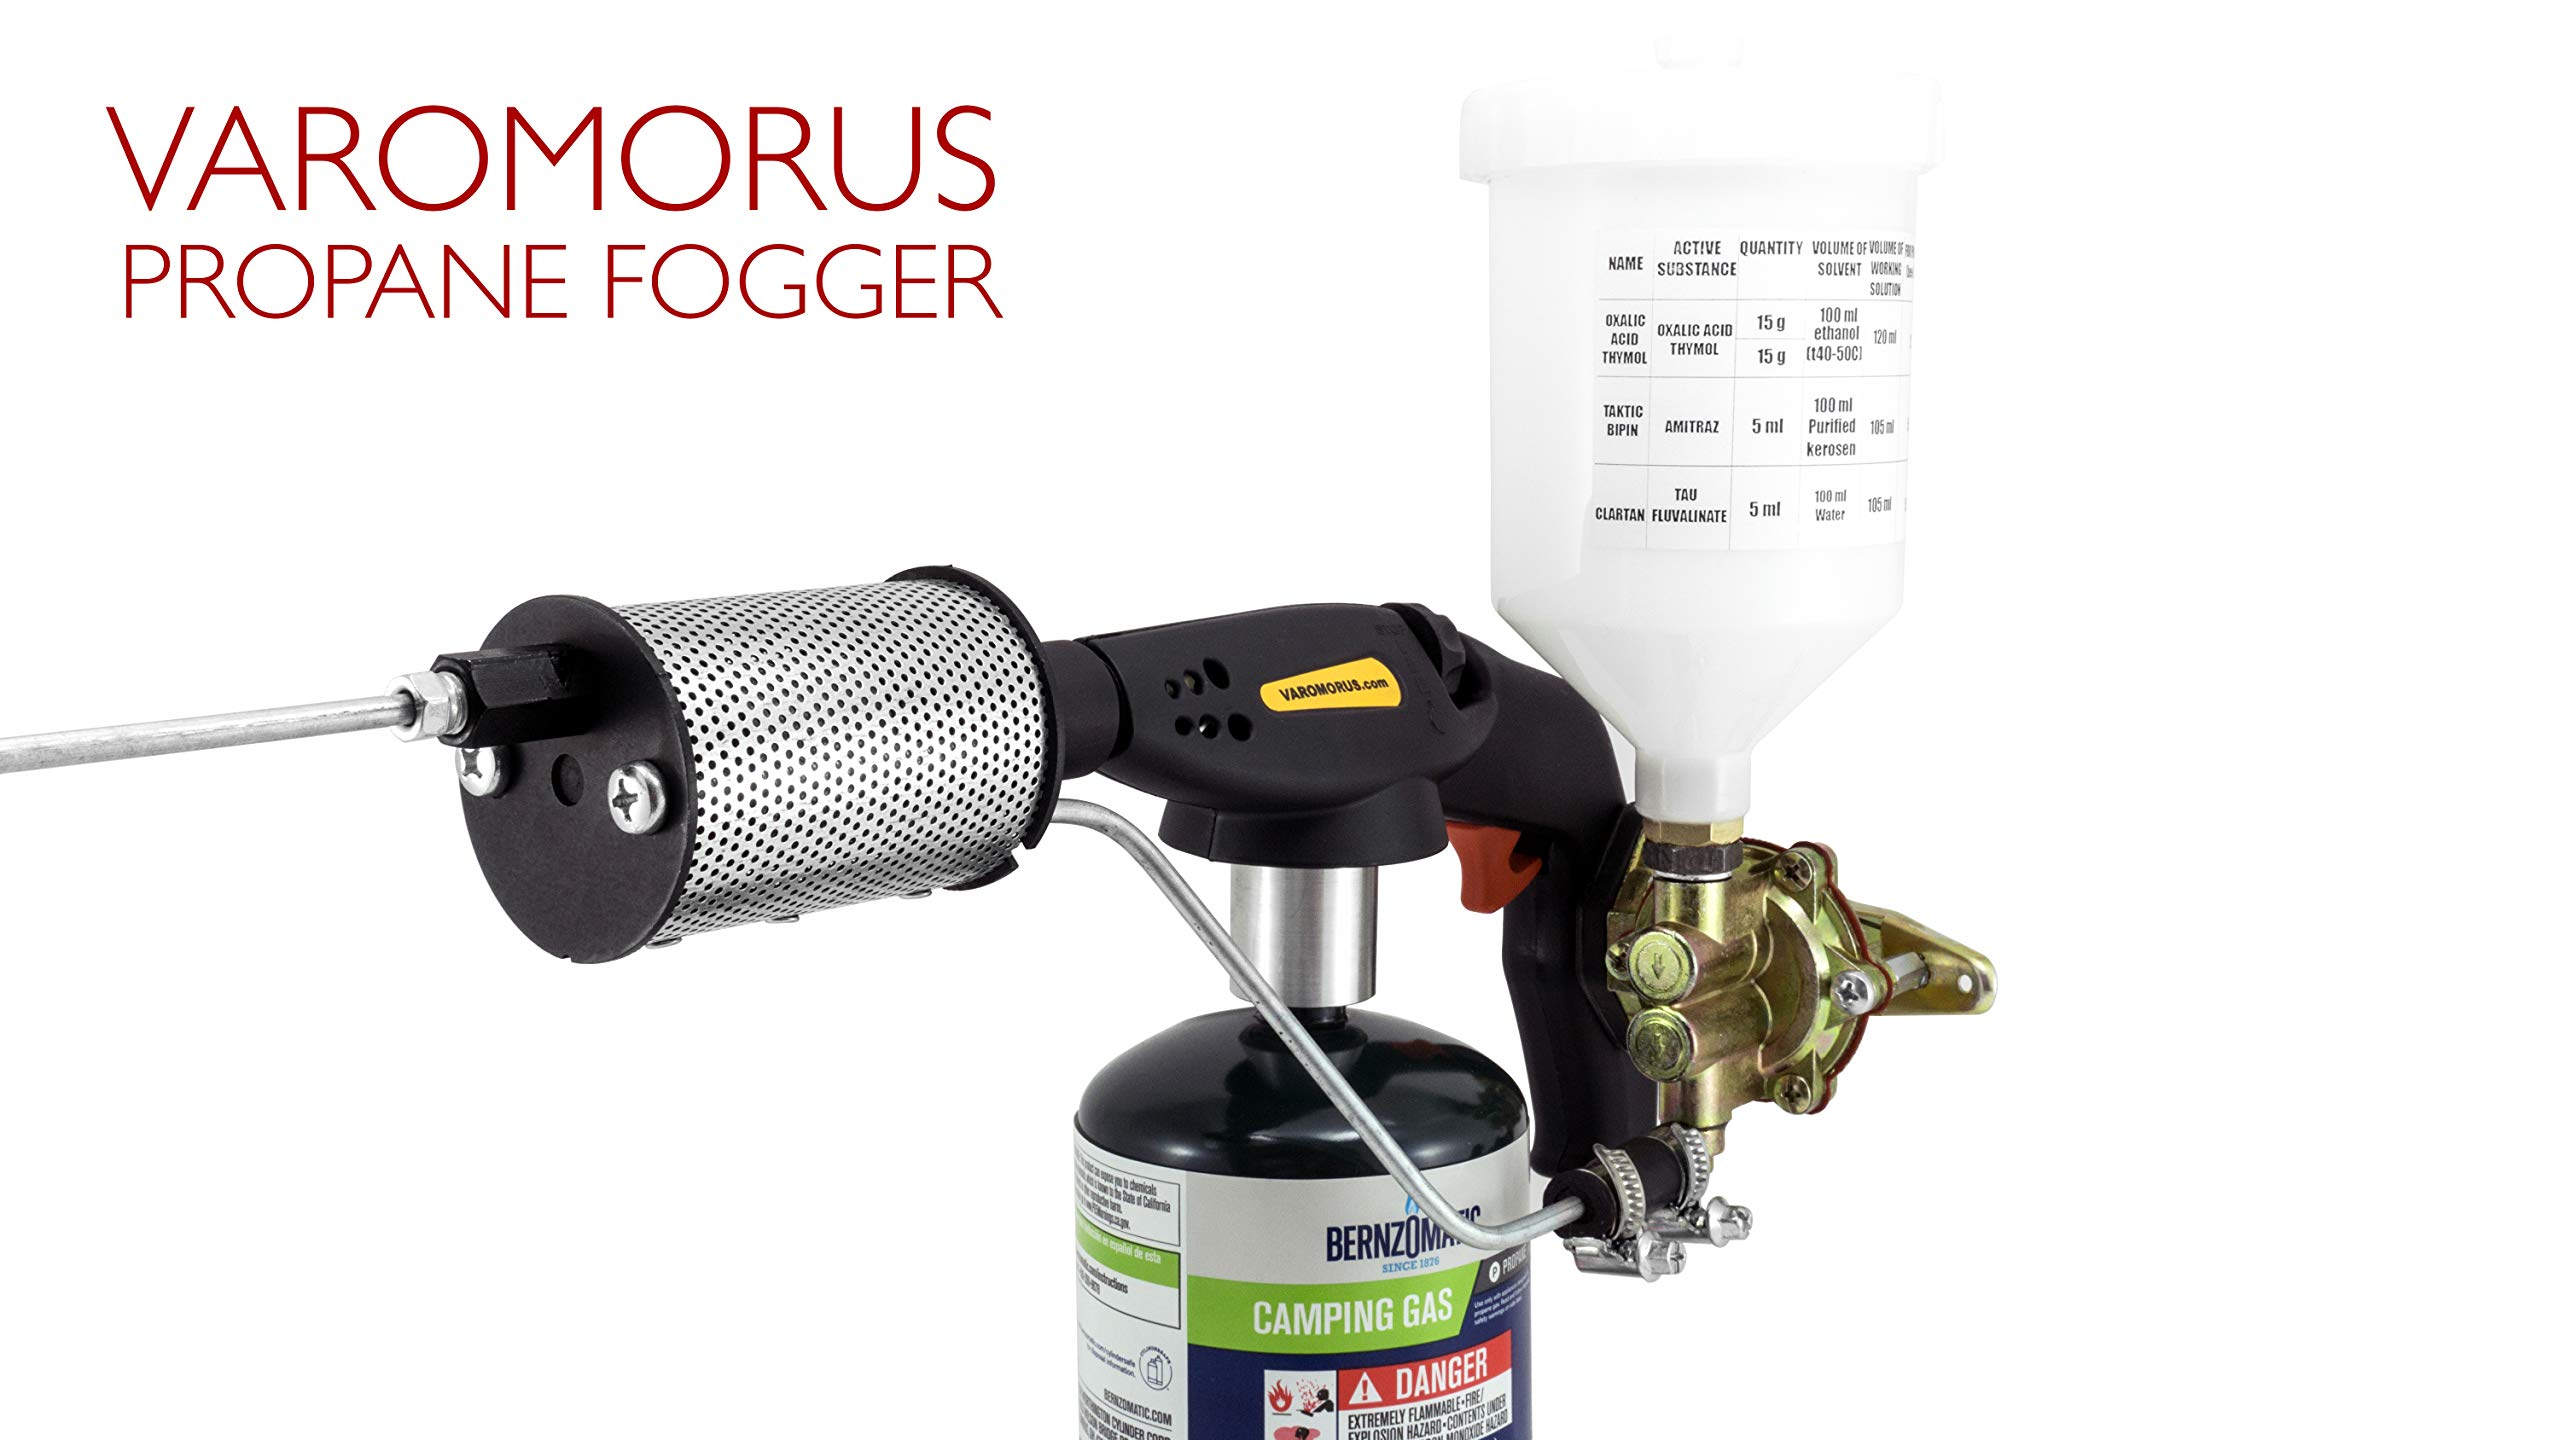 Varomorus Propane Insect Fogger for Fast and Effective Varroa Mites Control by Varomorus